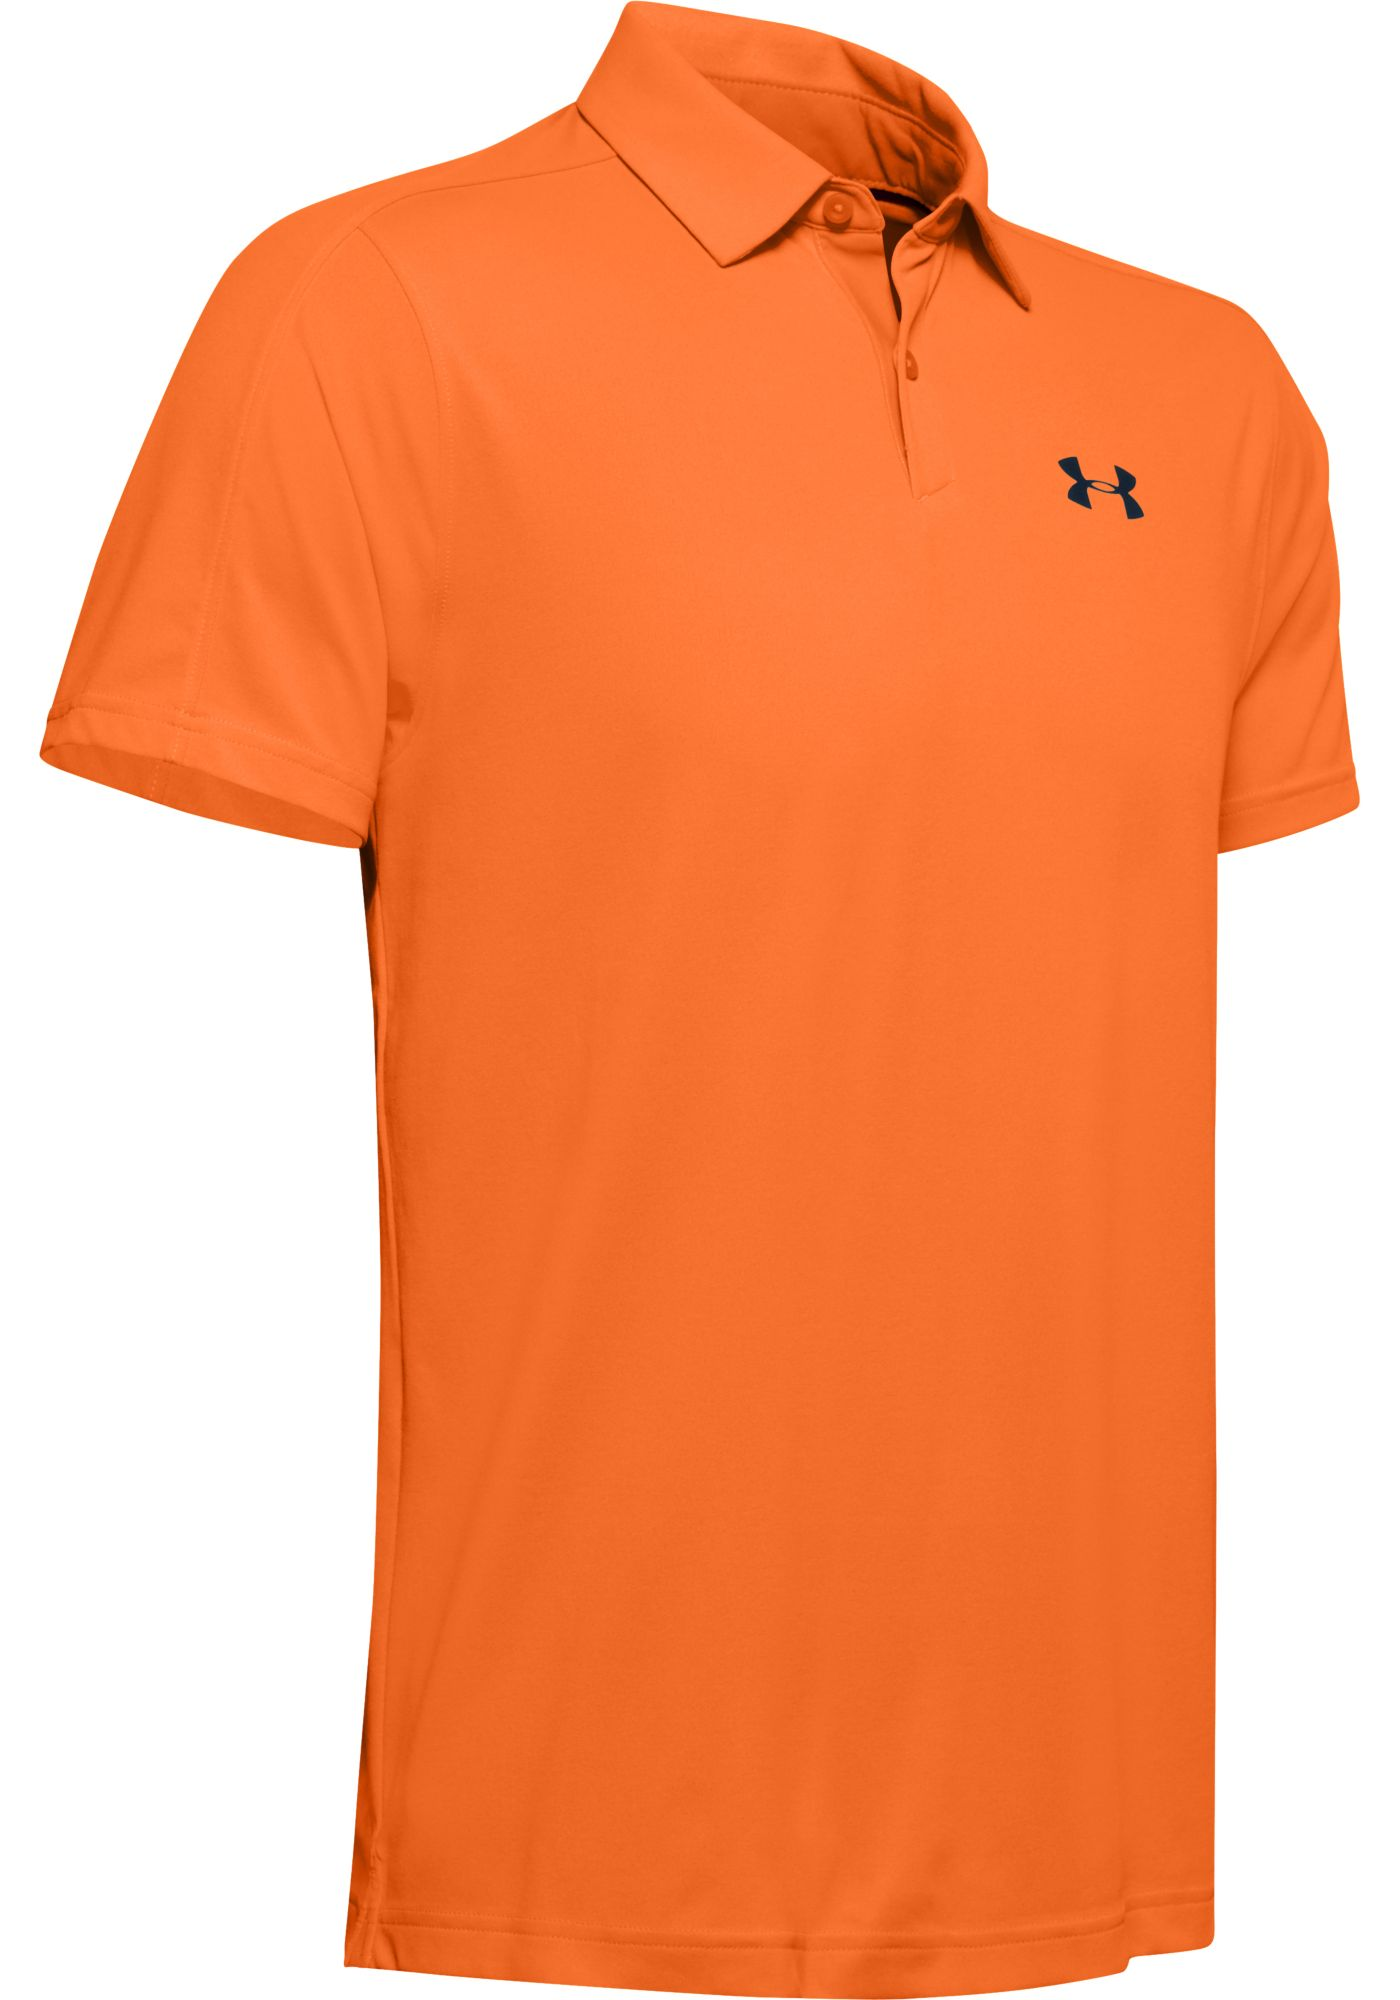 Under Armour Men's Solid Vanish Golf Polo